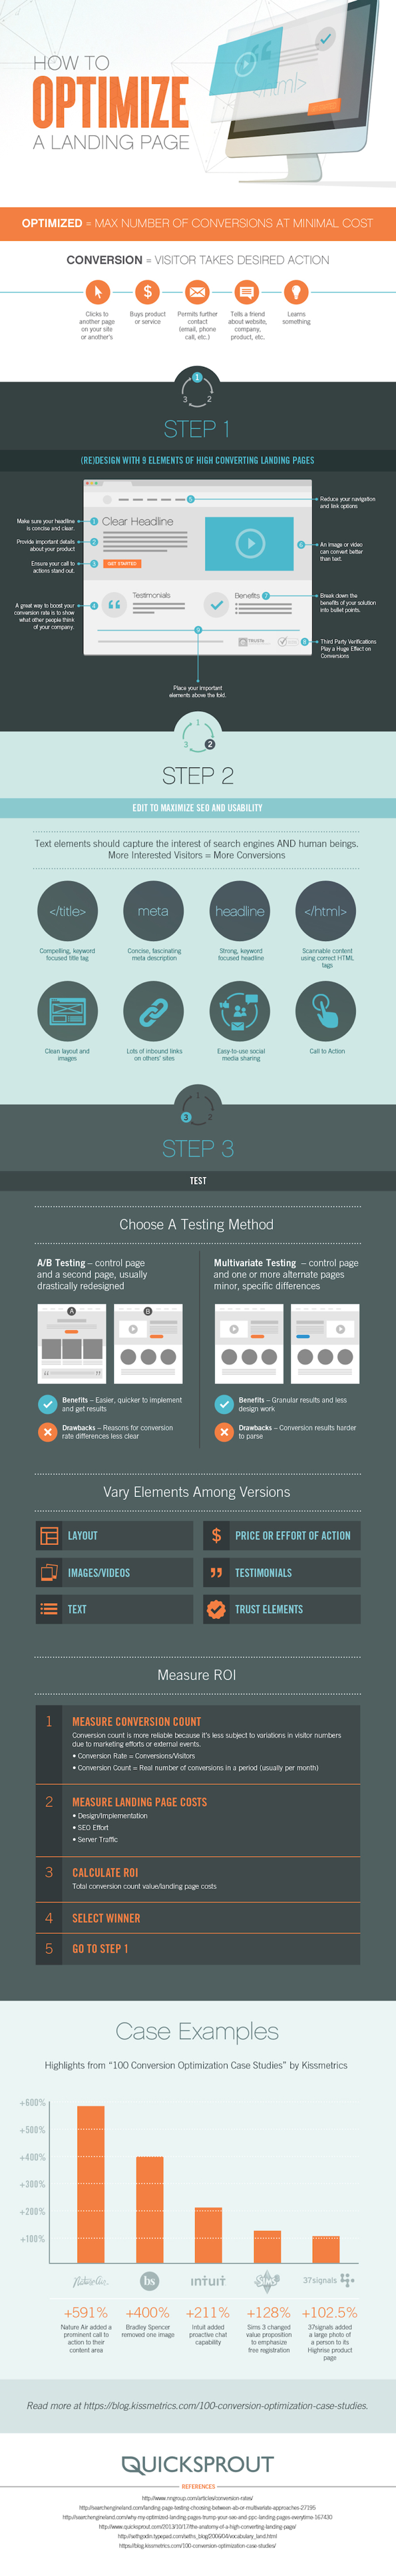 3-steps-to-landing-page-optimization-infographic_copy